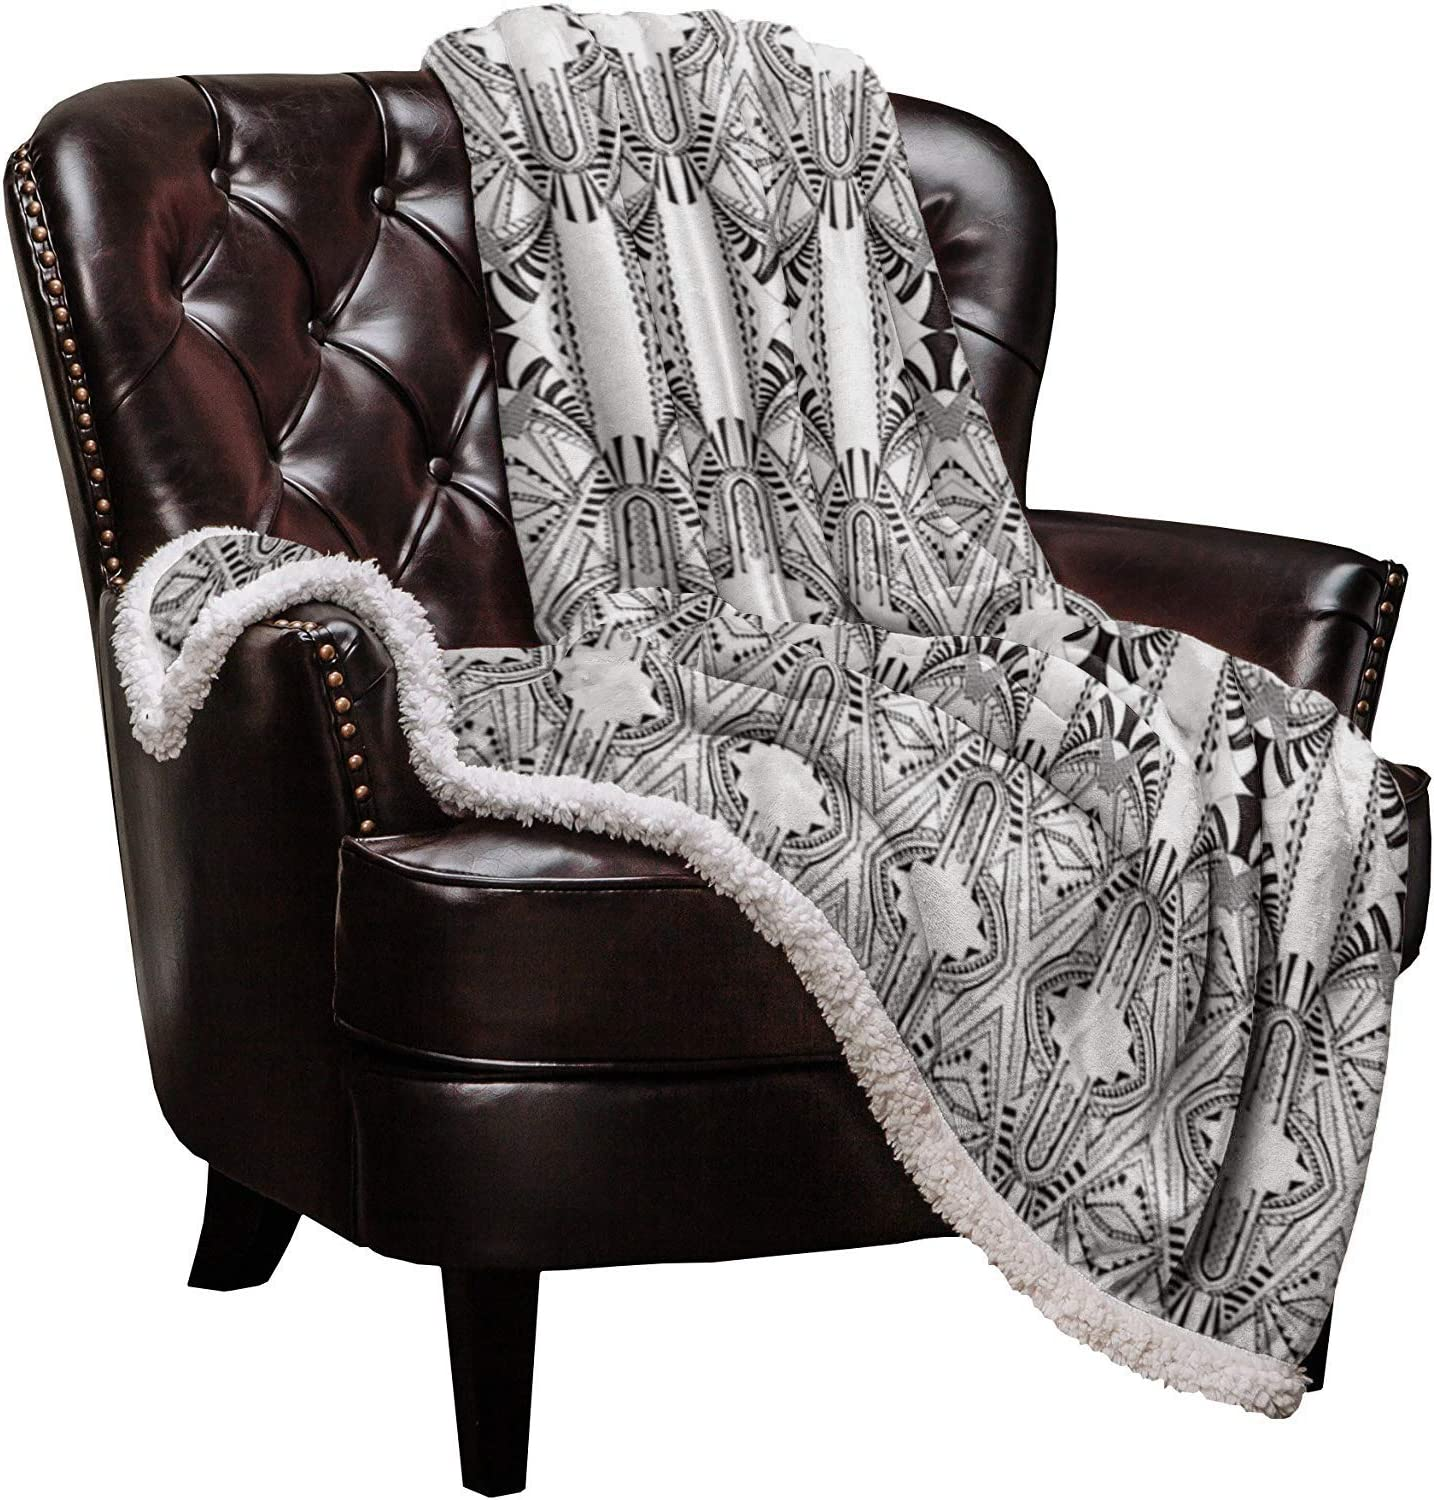 Sherpa Fleece Throw Blanket Royal Pattern Ranking TOP11 Soft Floral Tucson Mall Style Warm